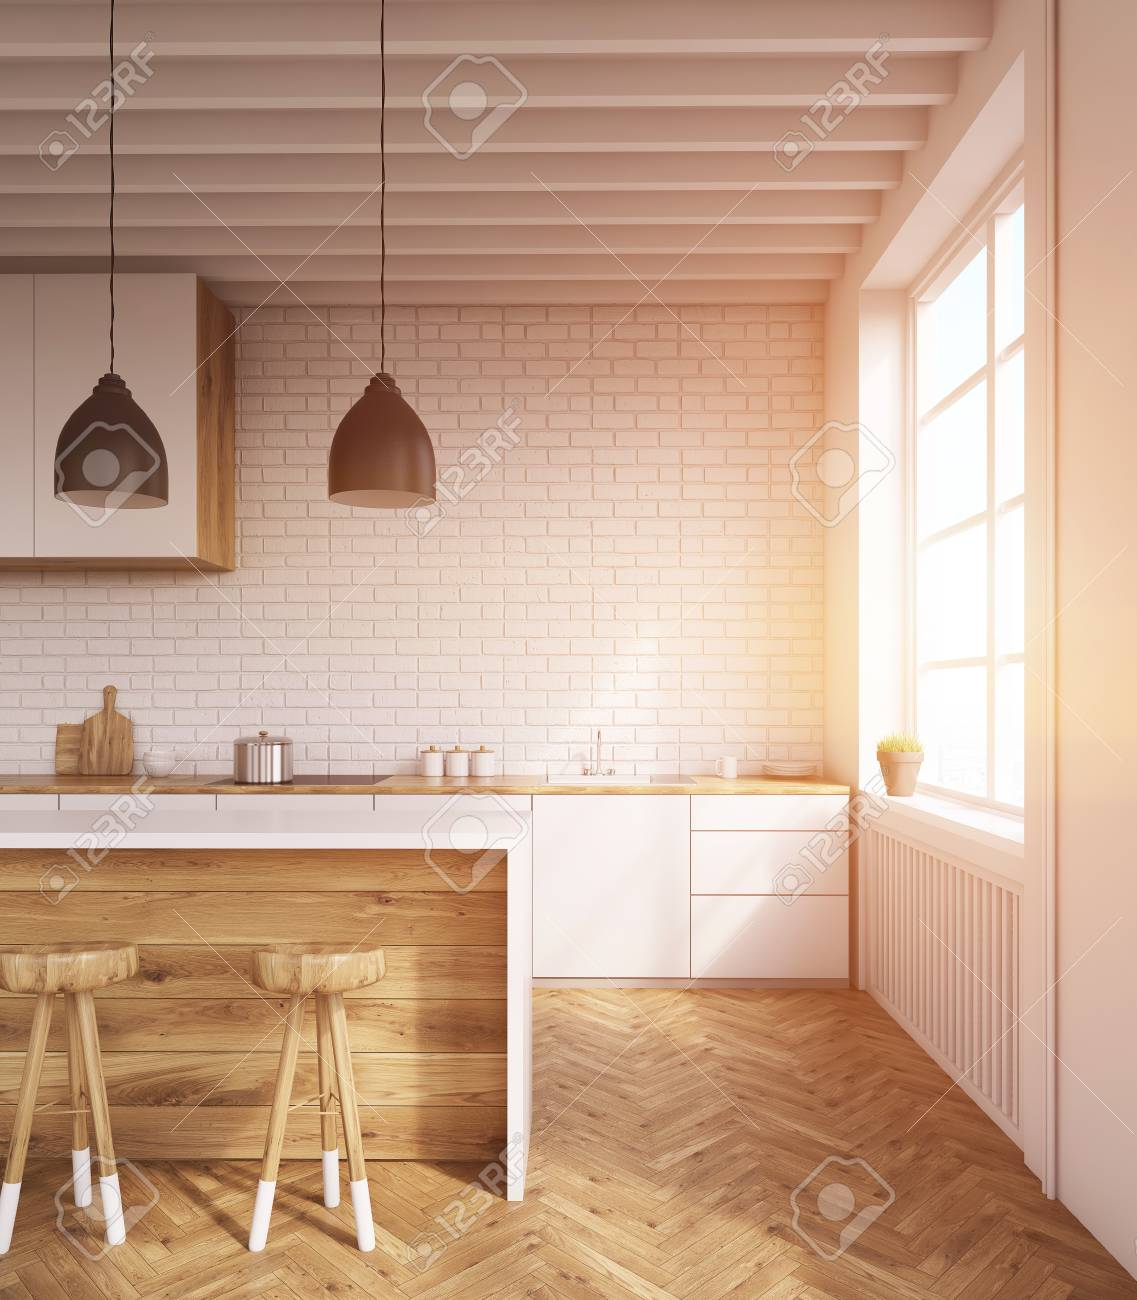 Kitchen Interior With Wooden Furniture, Large Window And Bar ...